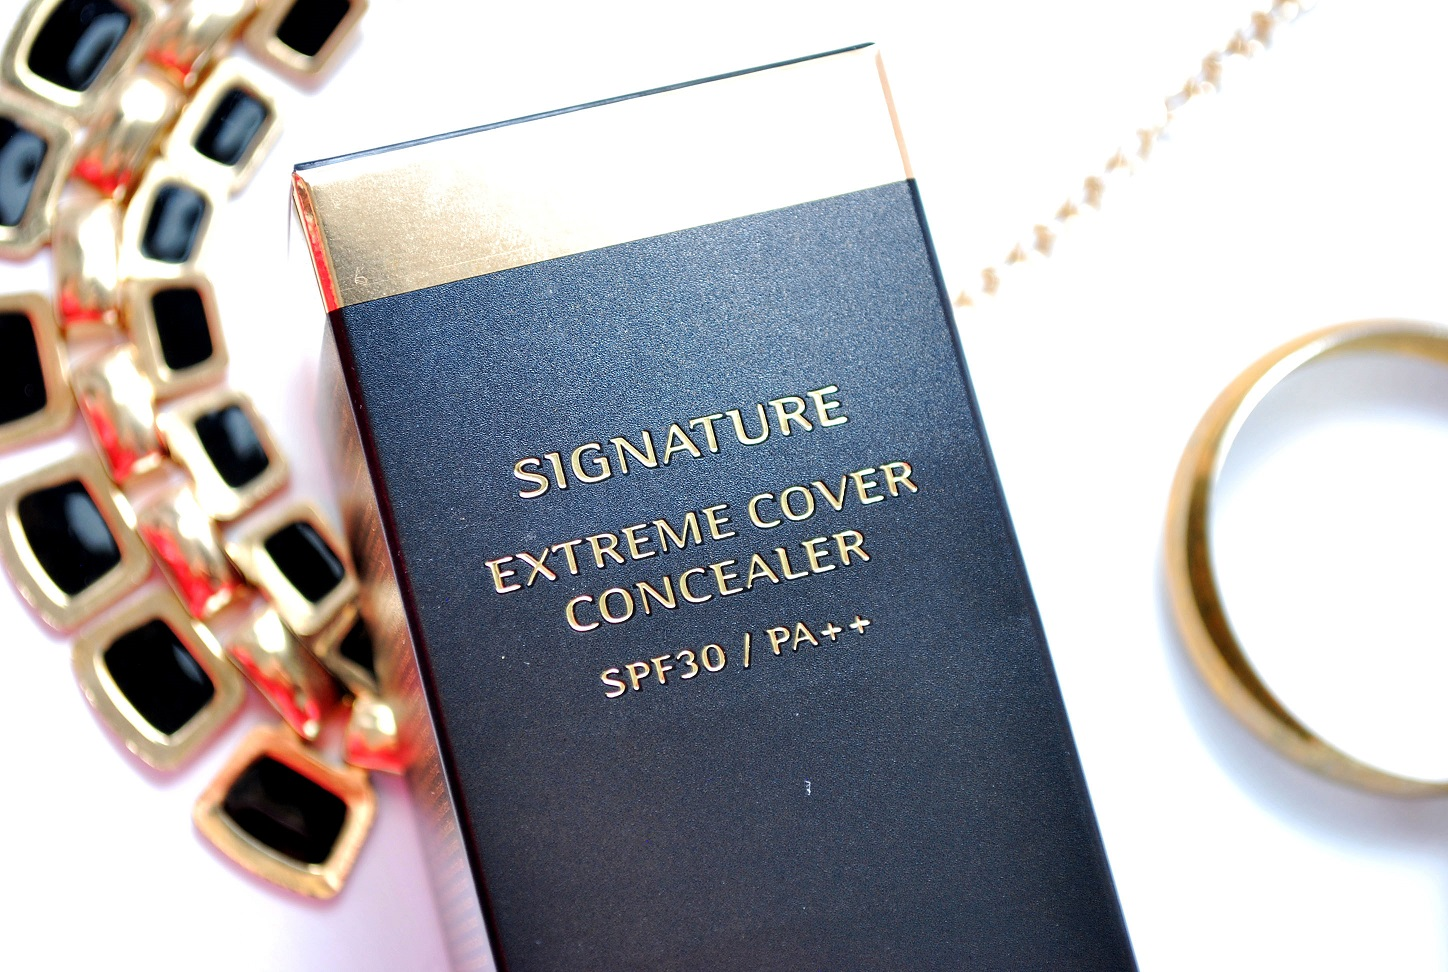 review Missha Signature Extreme Cover Concealer #21 Light Beige